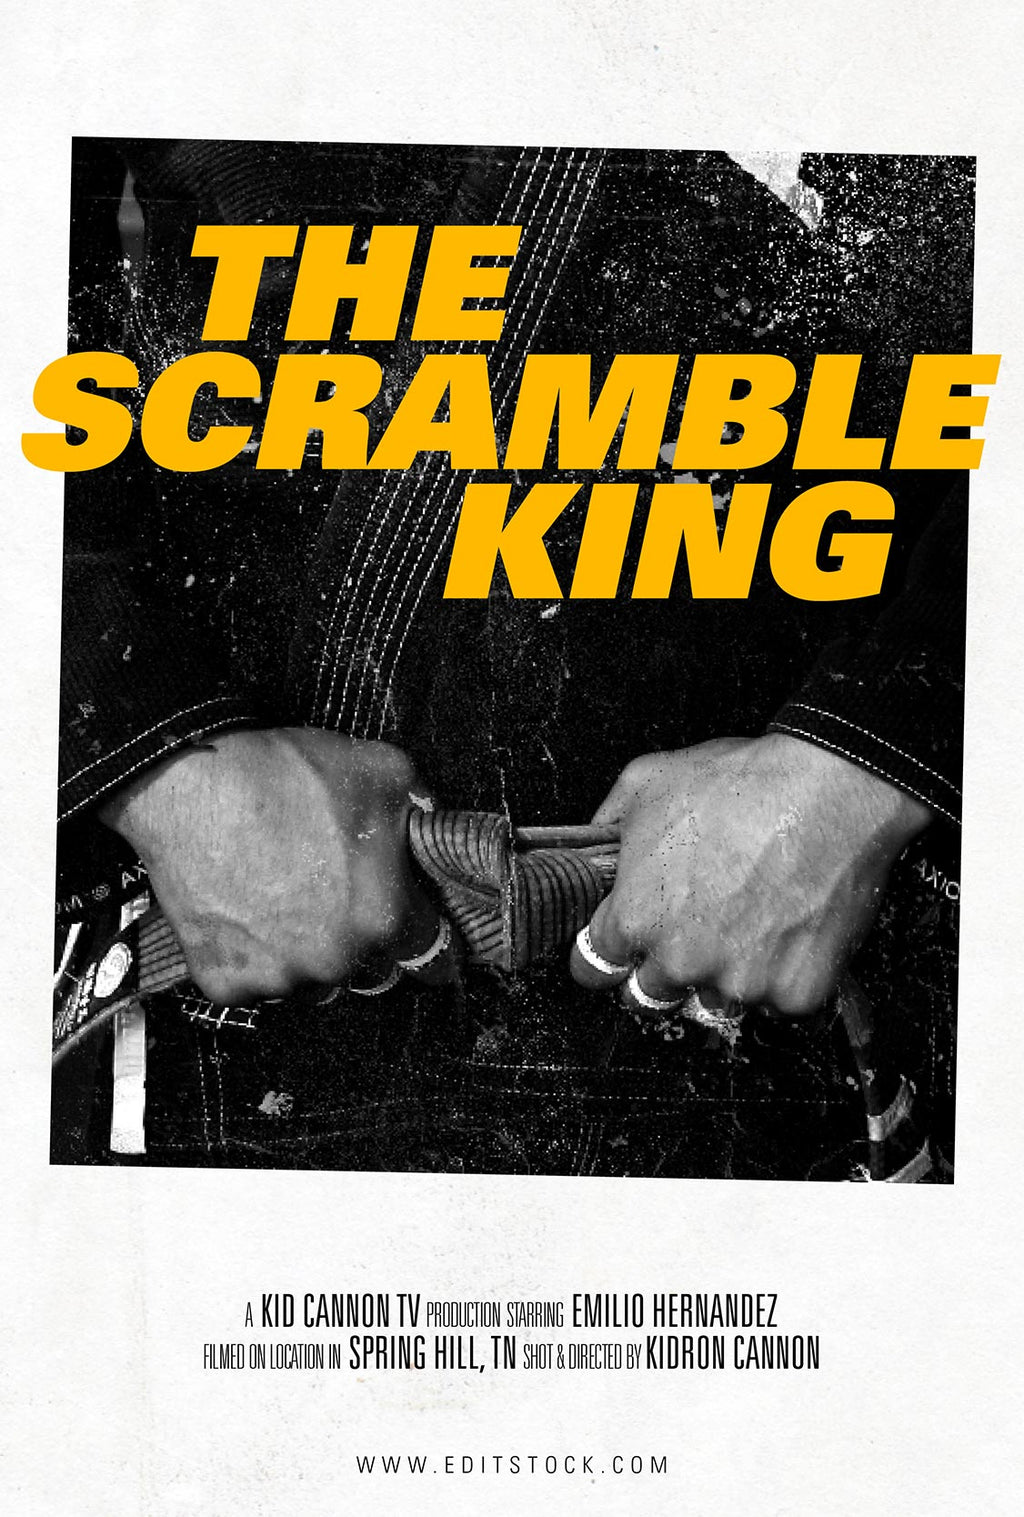 Scramble King - EditStock Project